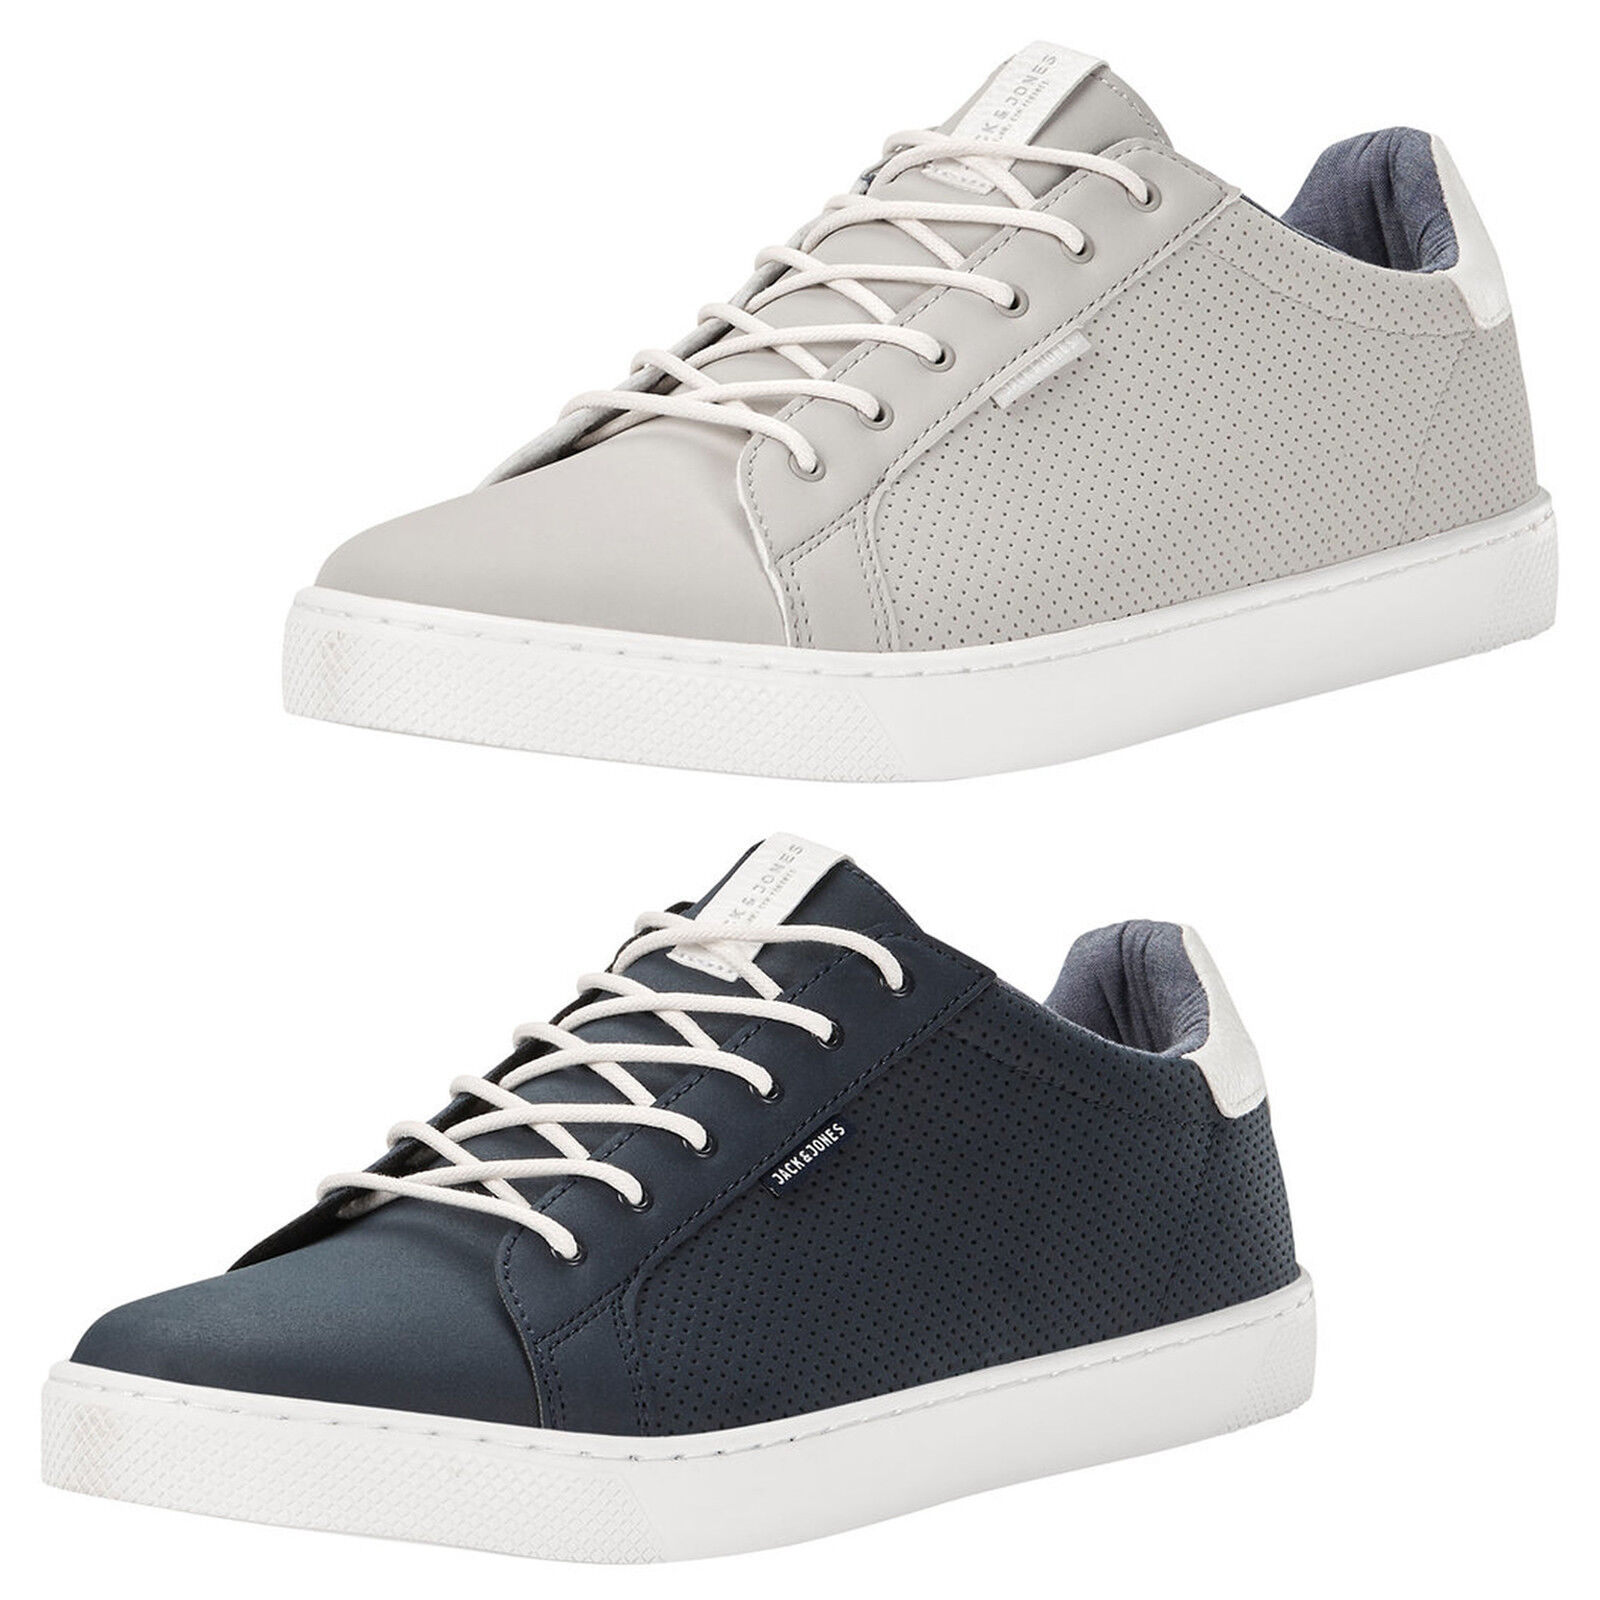 a652213b6652fd Details about Jack   Jones Trent Trainers Mens Summer Fashion Casual  Sneakers Shoes